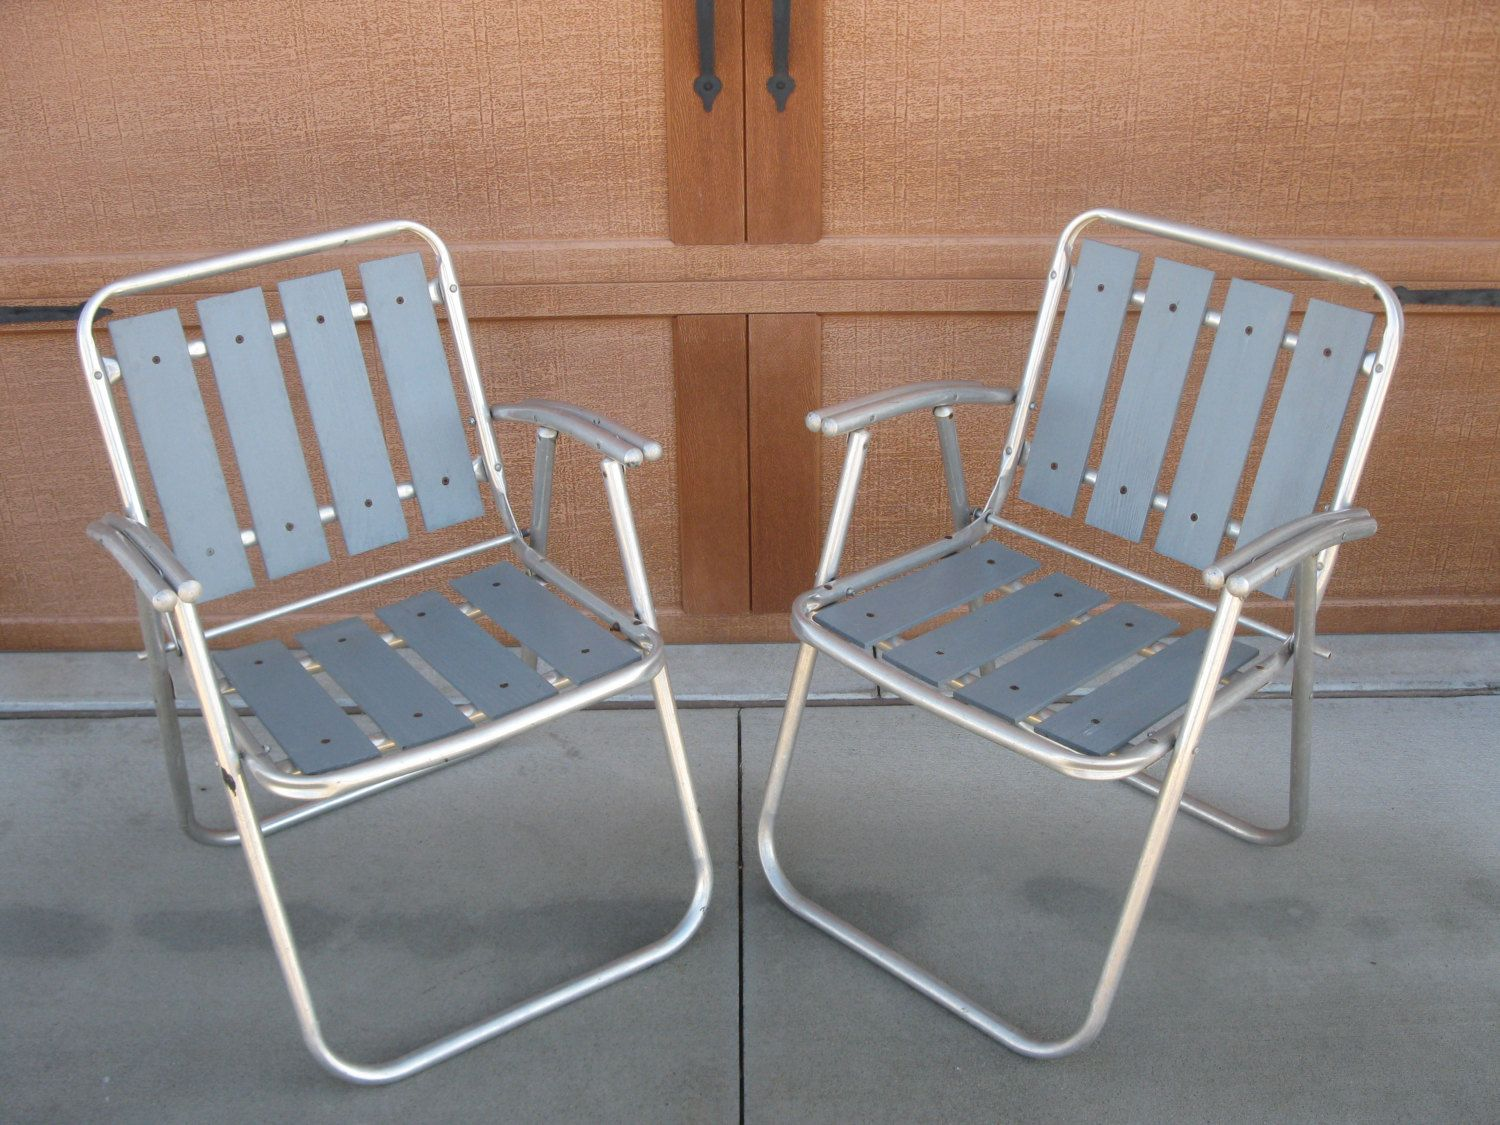 WOOD LAWN Chairs   Aluminum Folding Chair  SET Of 2  1960s  Wood Folding